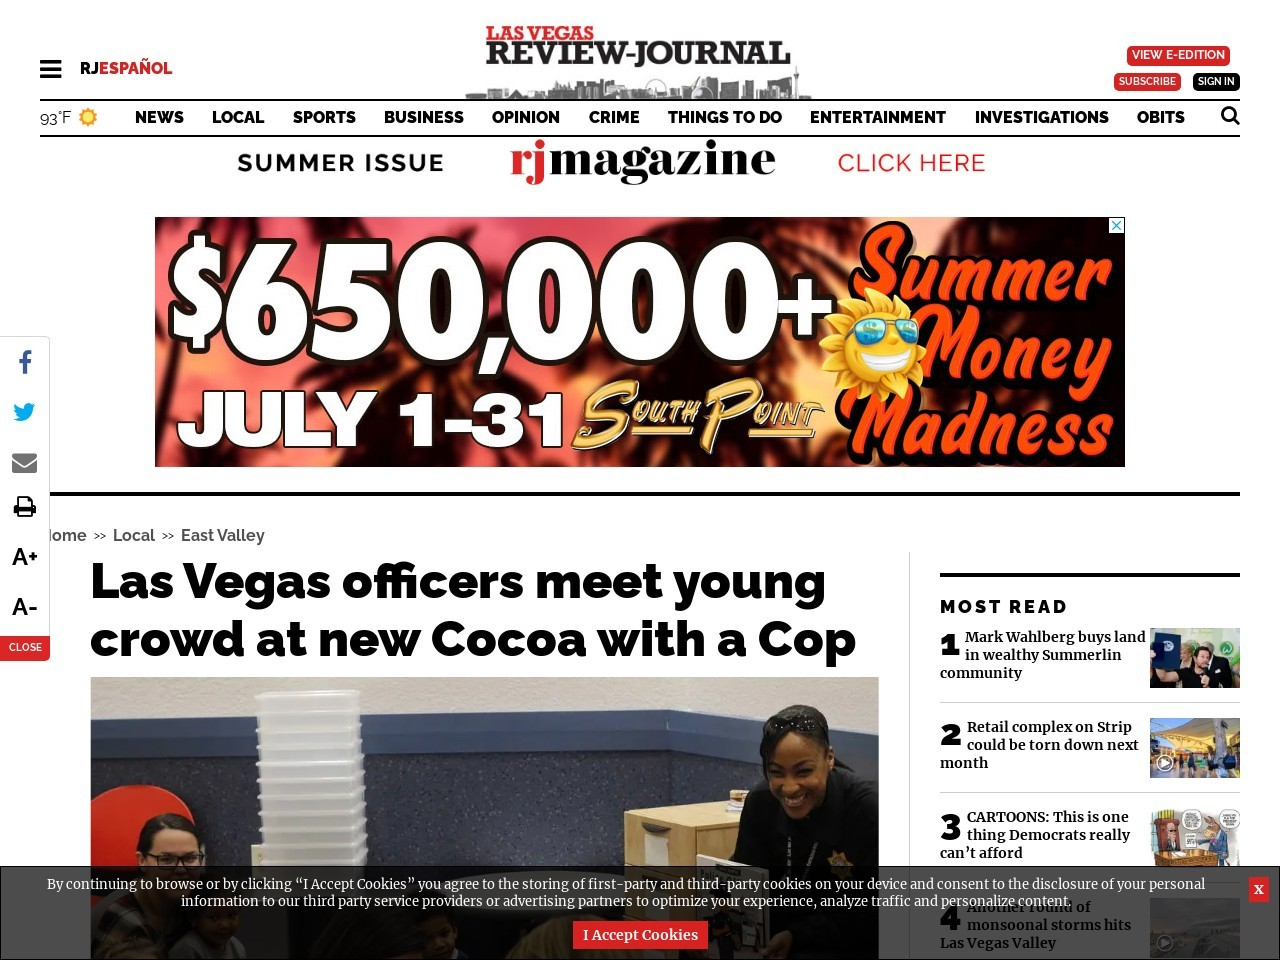 Las Vegas officers meet young crowd at new Cocoa with a Cop